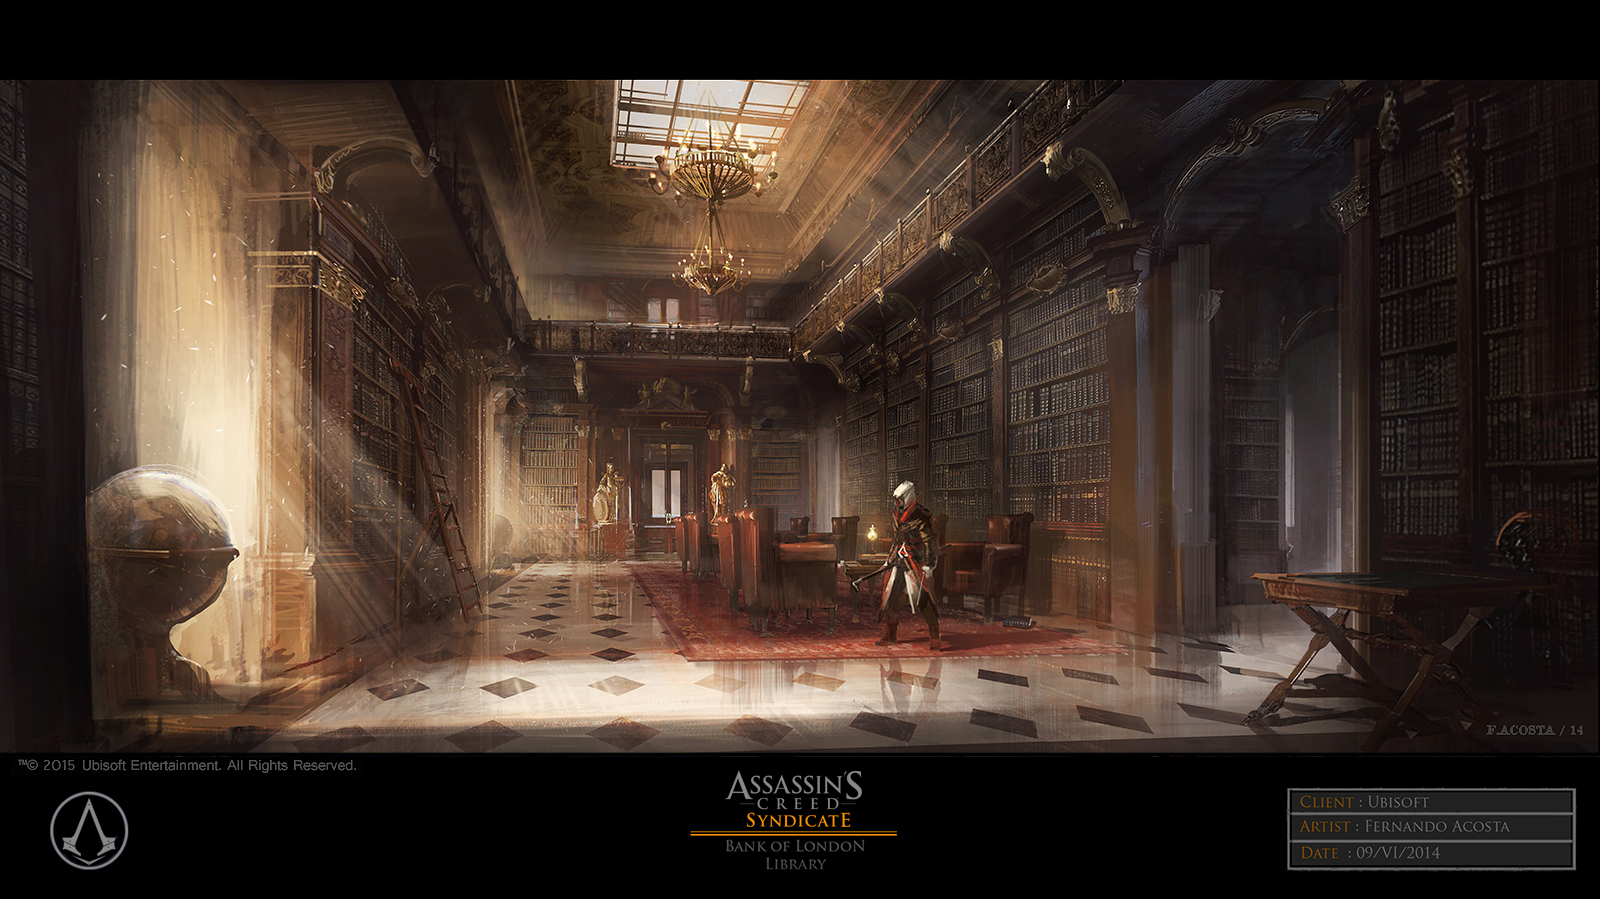 Assassin's Creed Syndicate Concept Art by Fernando Acosta